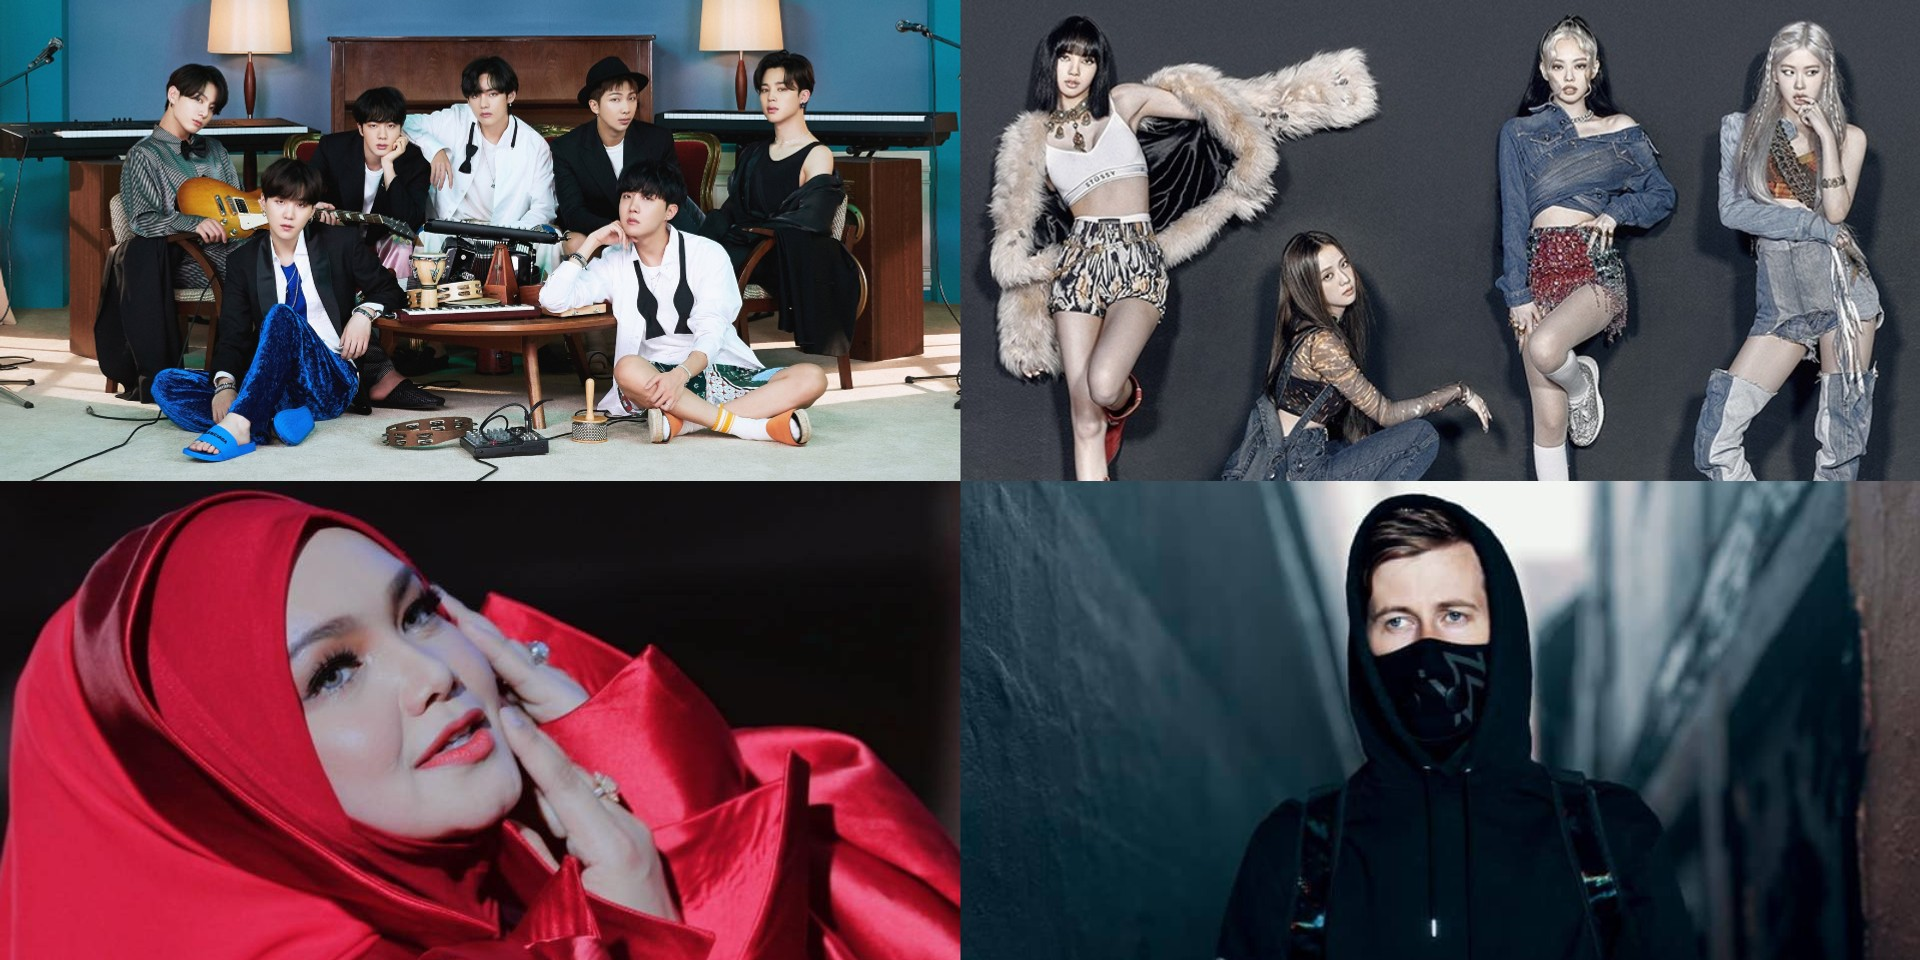 JOOX unveils 2020 Music Annual Review, BTS, BLACKPINK, Dato' Sri Siti Nurhaliza, and Alan Walker among top-streamed artists in Malaysia